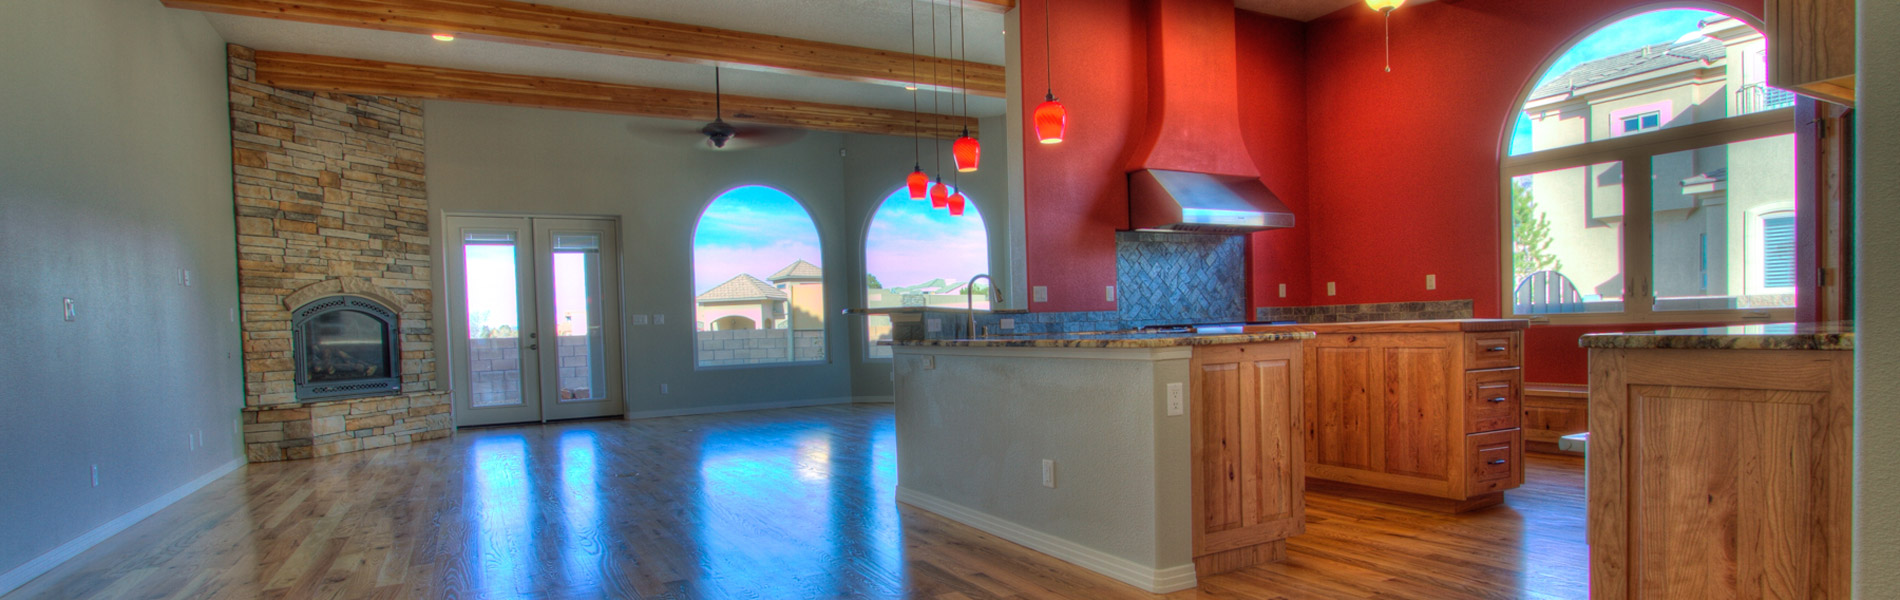 Albuquerque Custom Home Builder Project Image